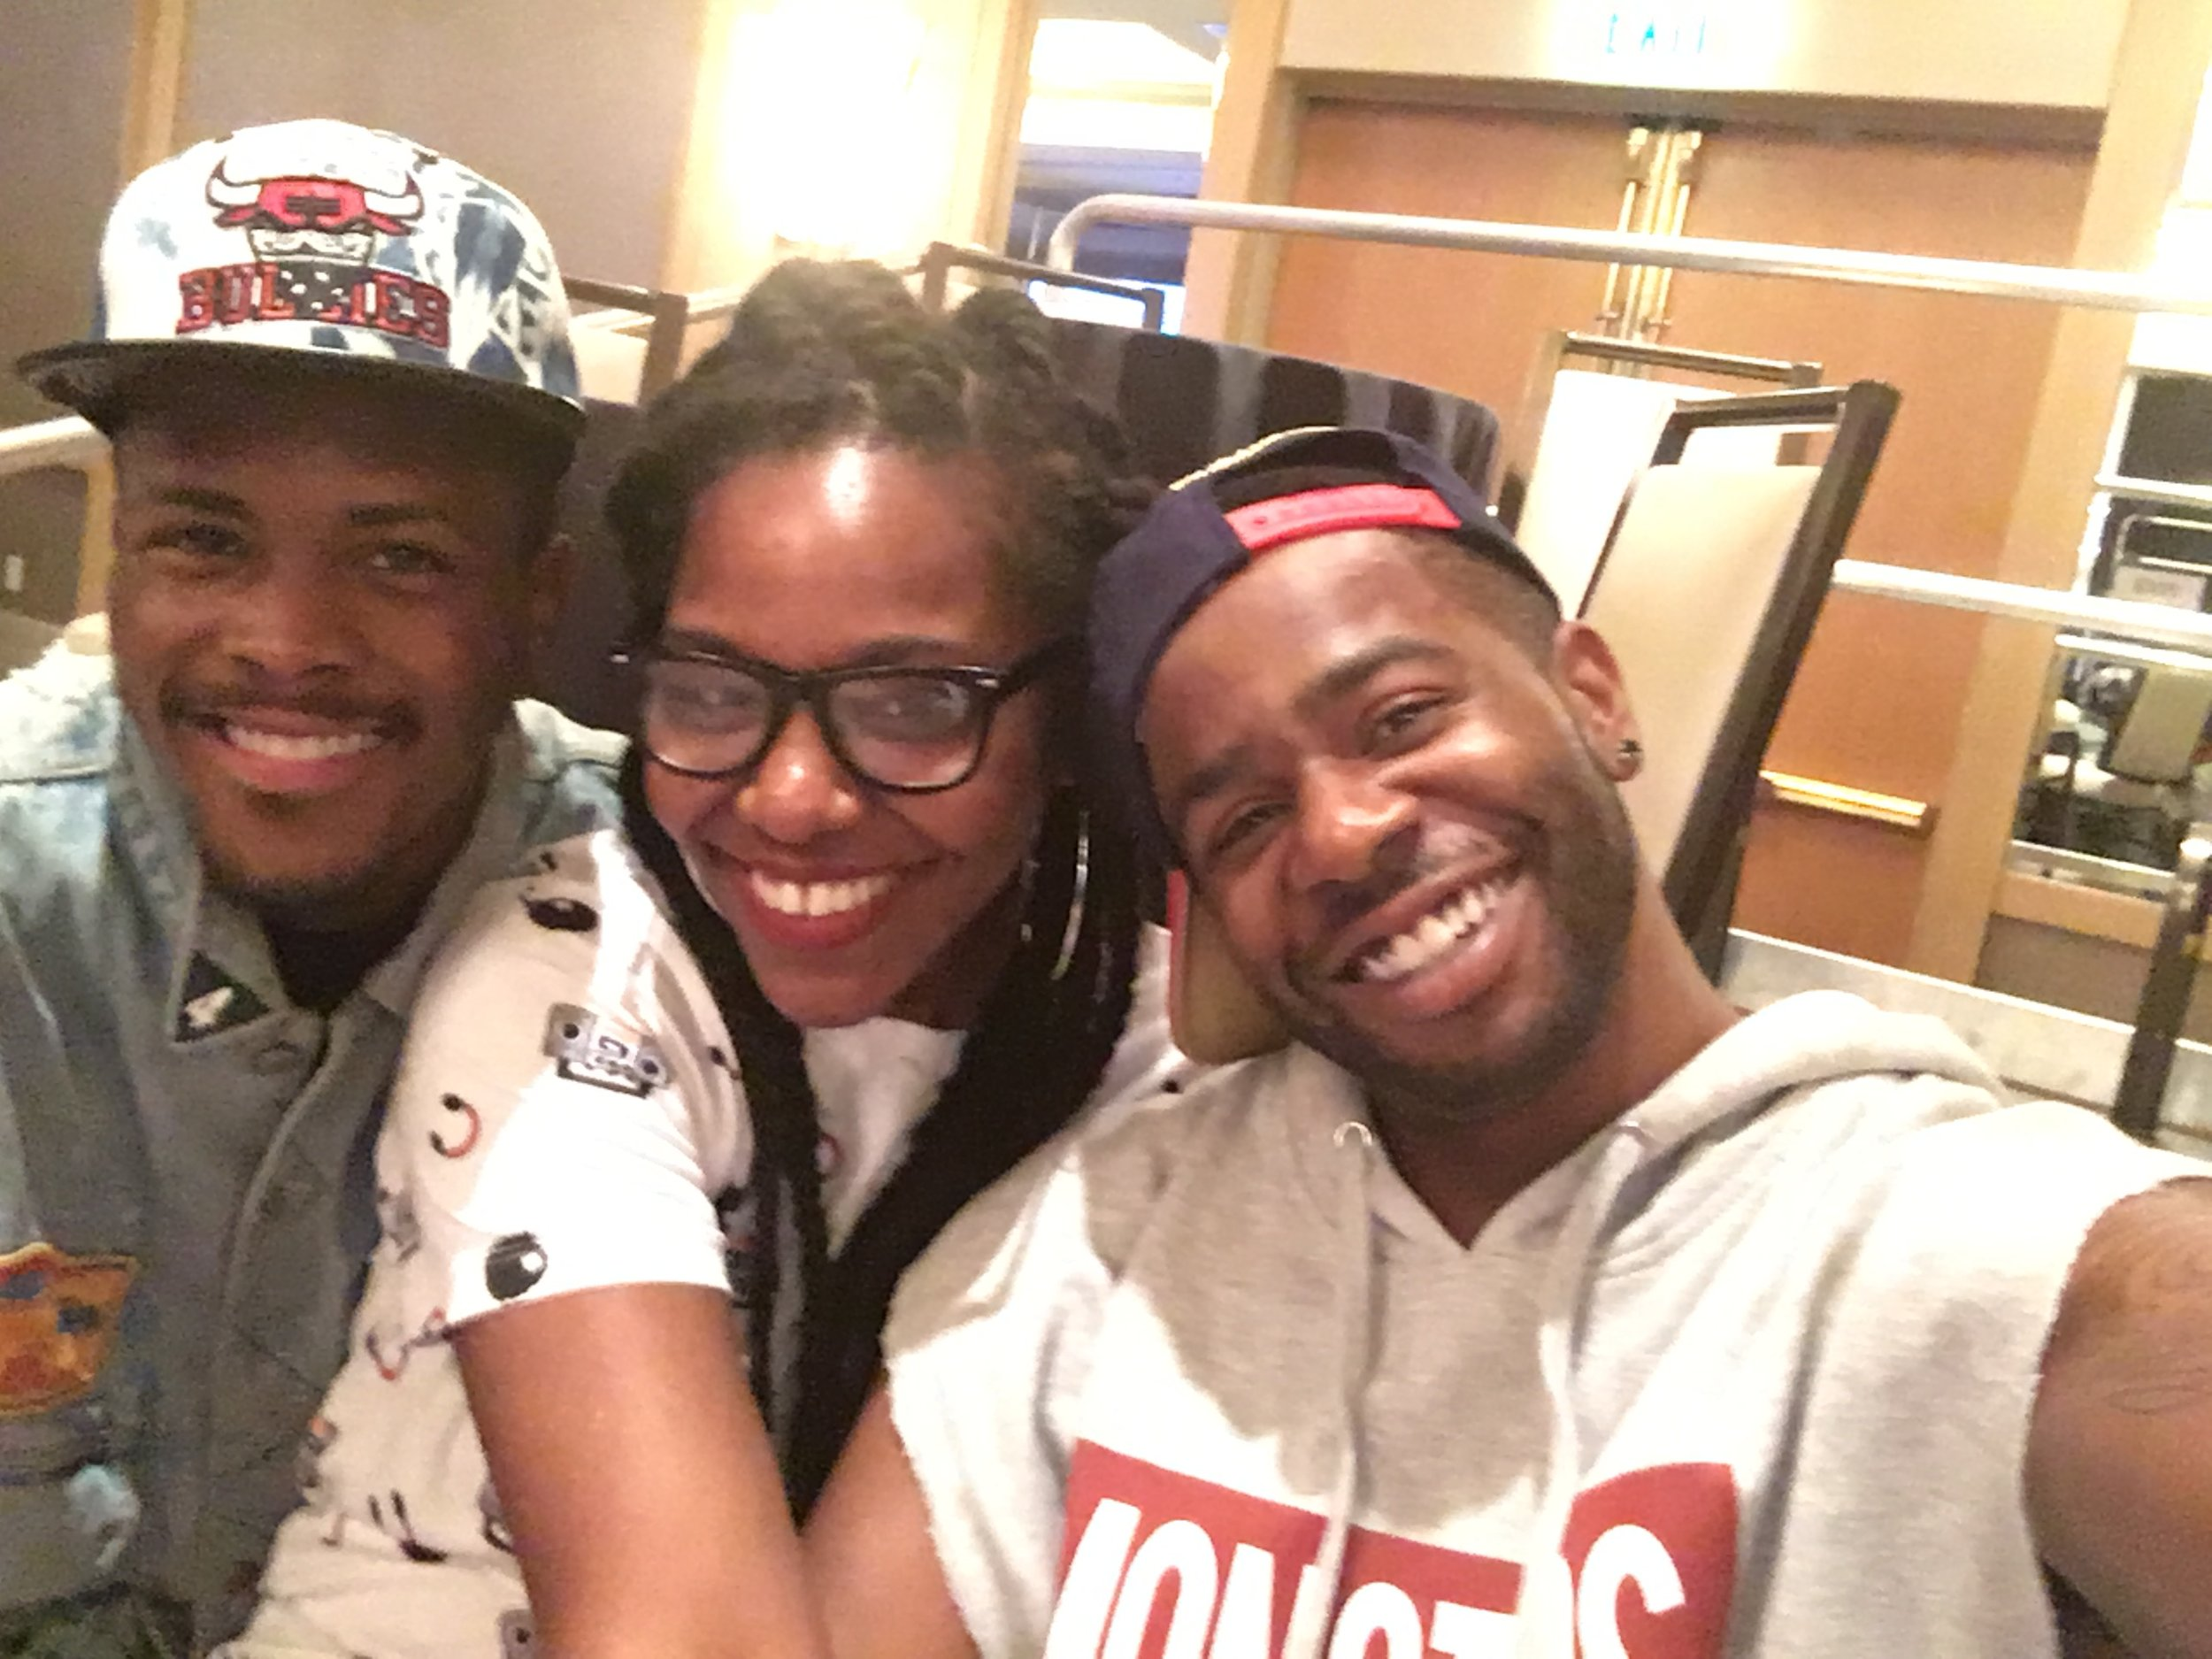 Stopped by to watch Monsters Cast rehearsal. Sitting pretty with these two fellow alumni, Robert Green and Leon Blackwood. Monsters family!